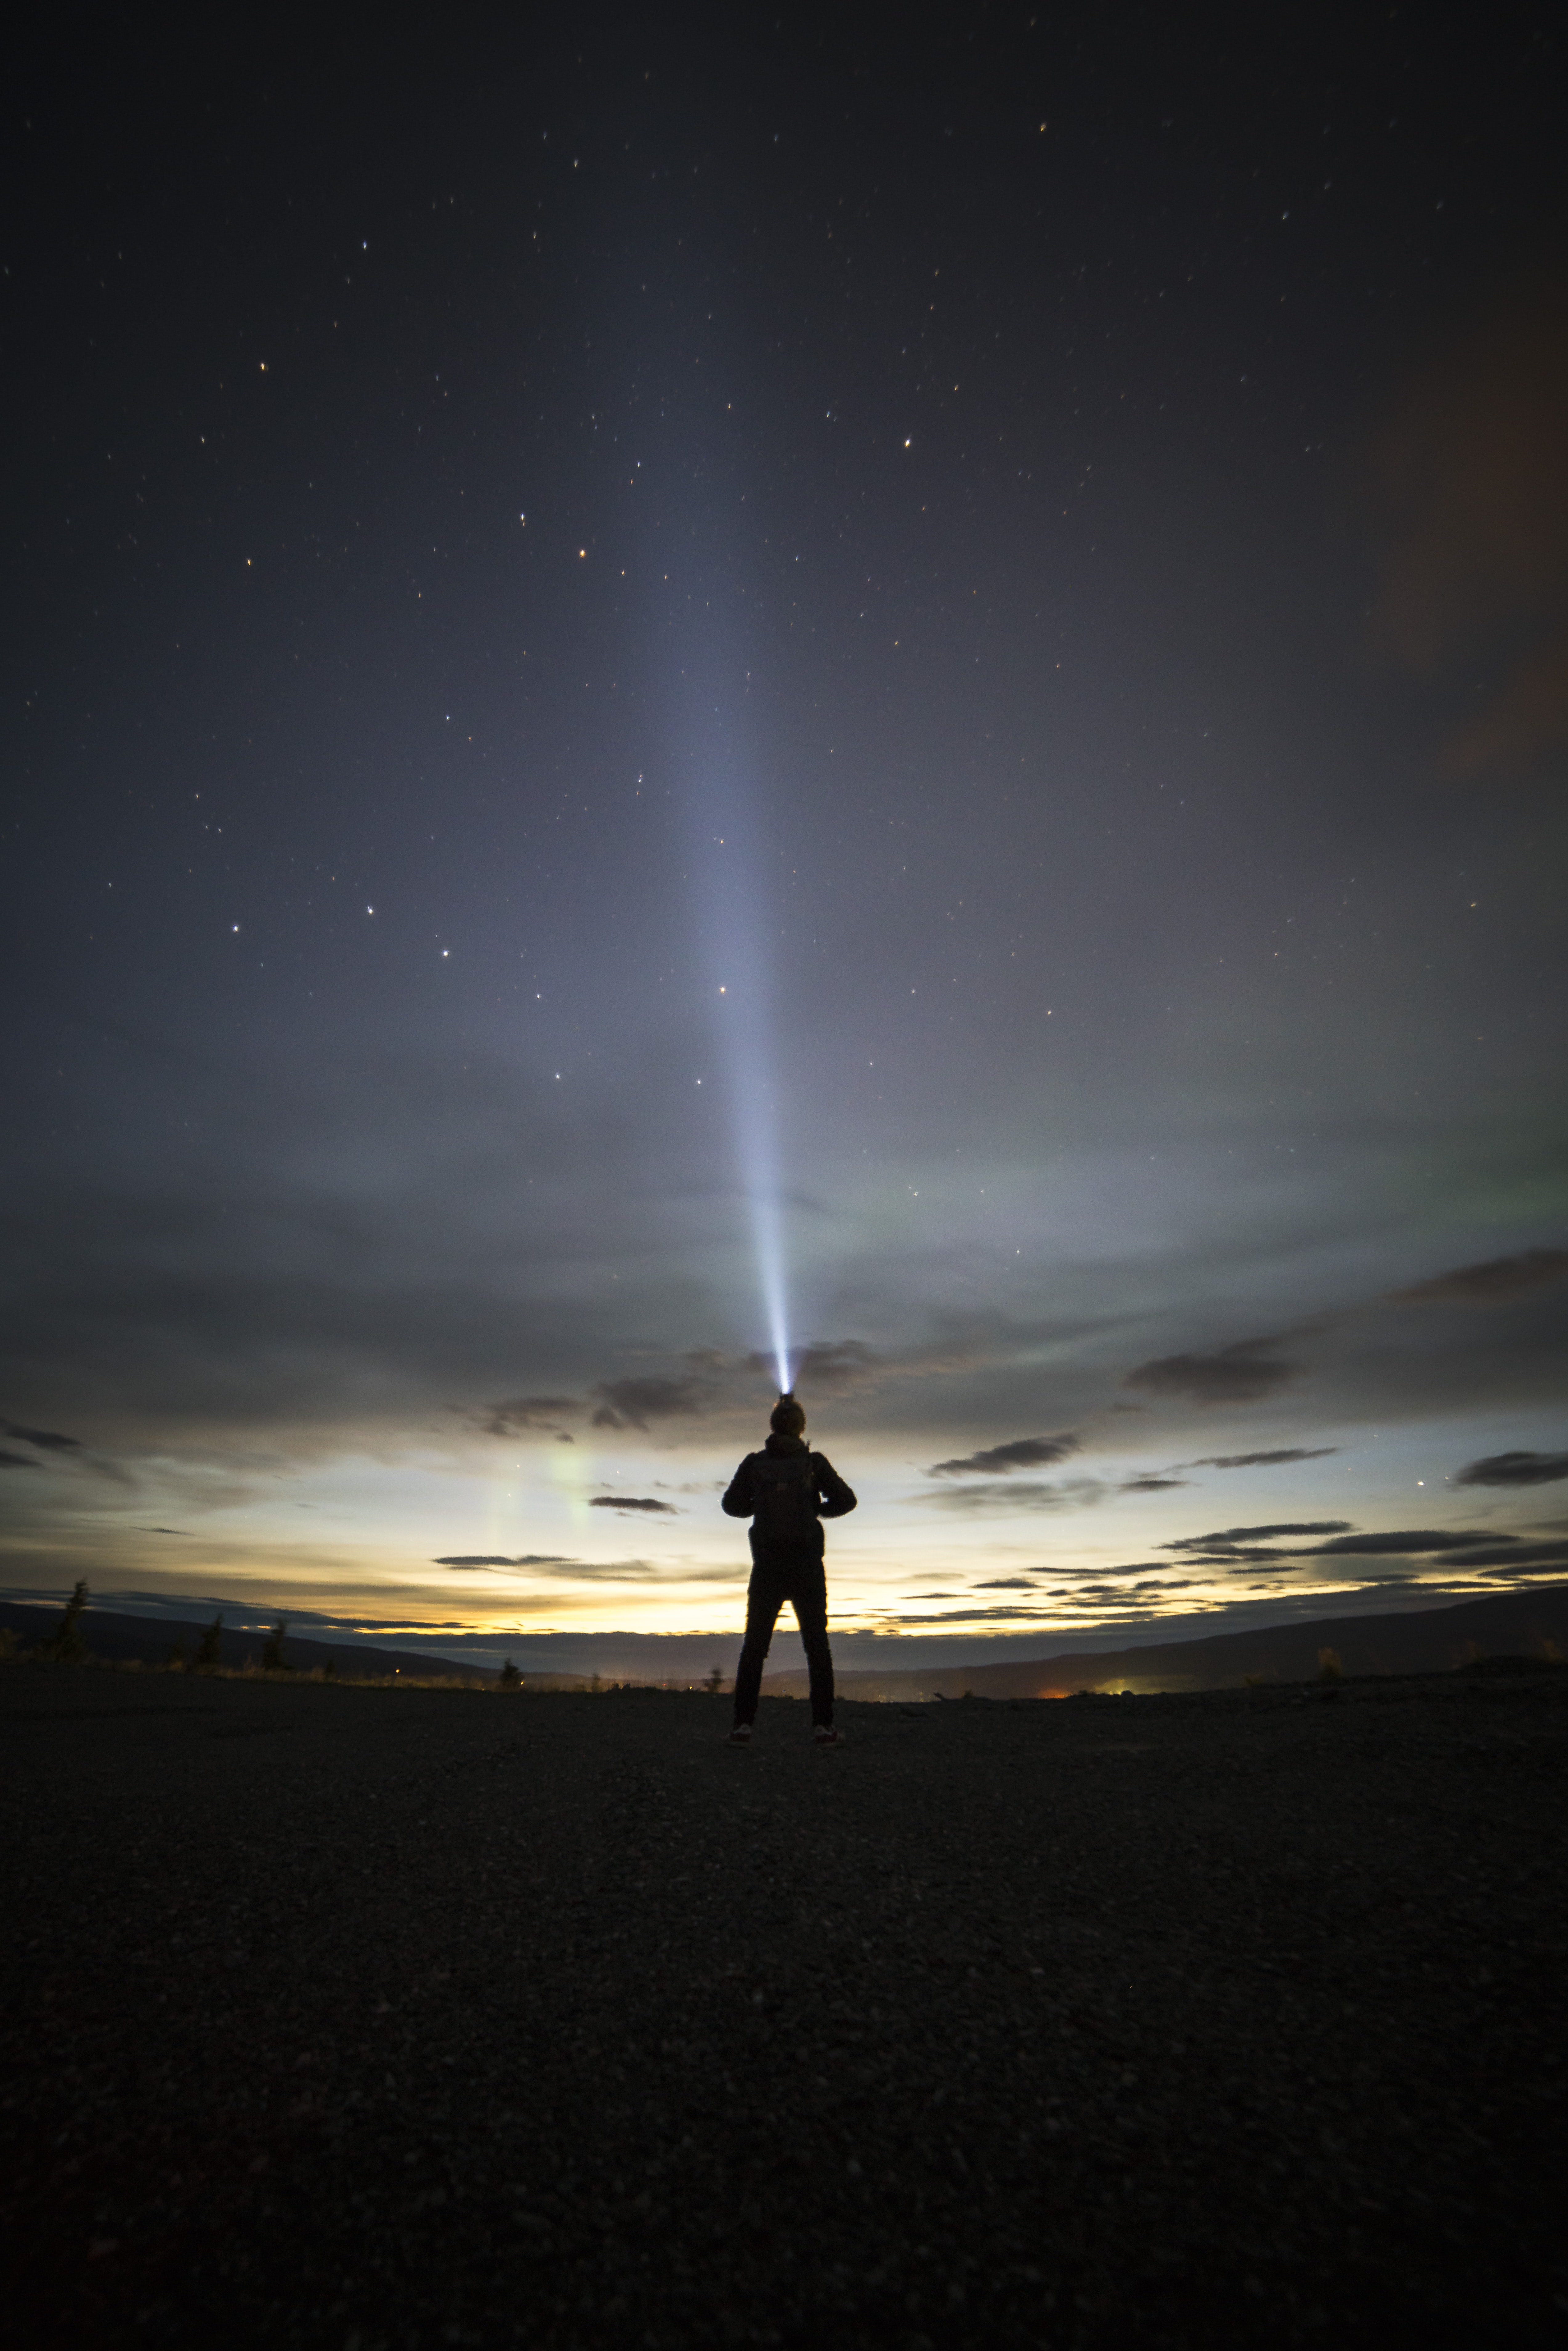 silhouette of person under starry sky during sunset